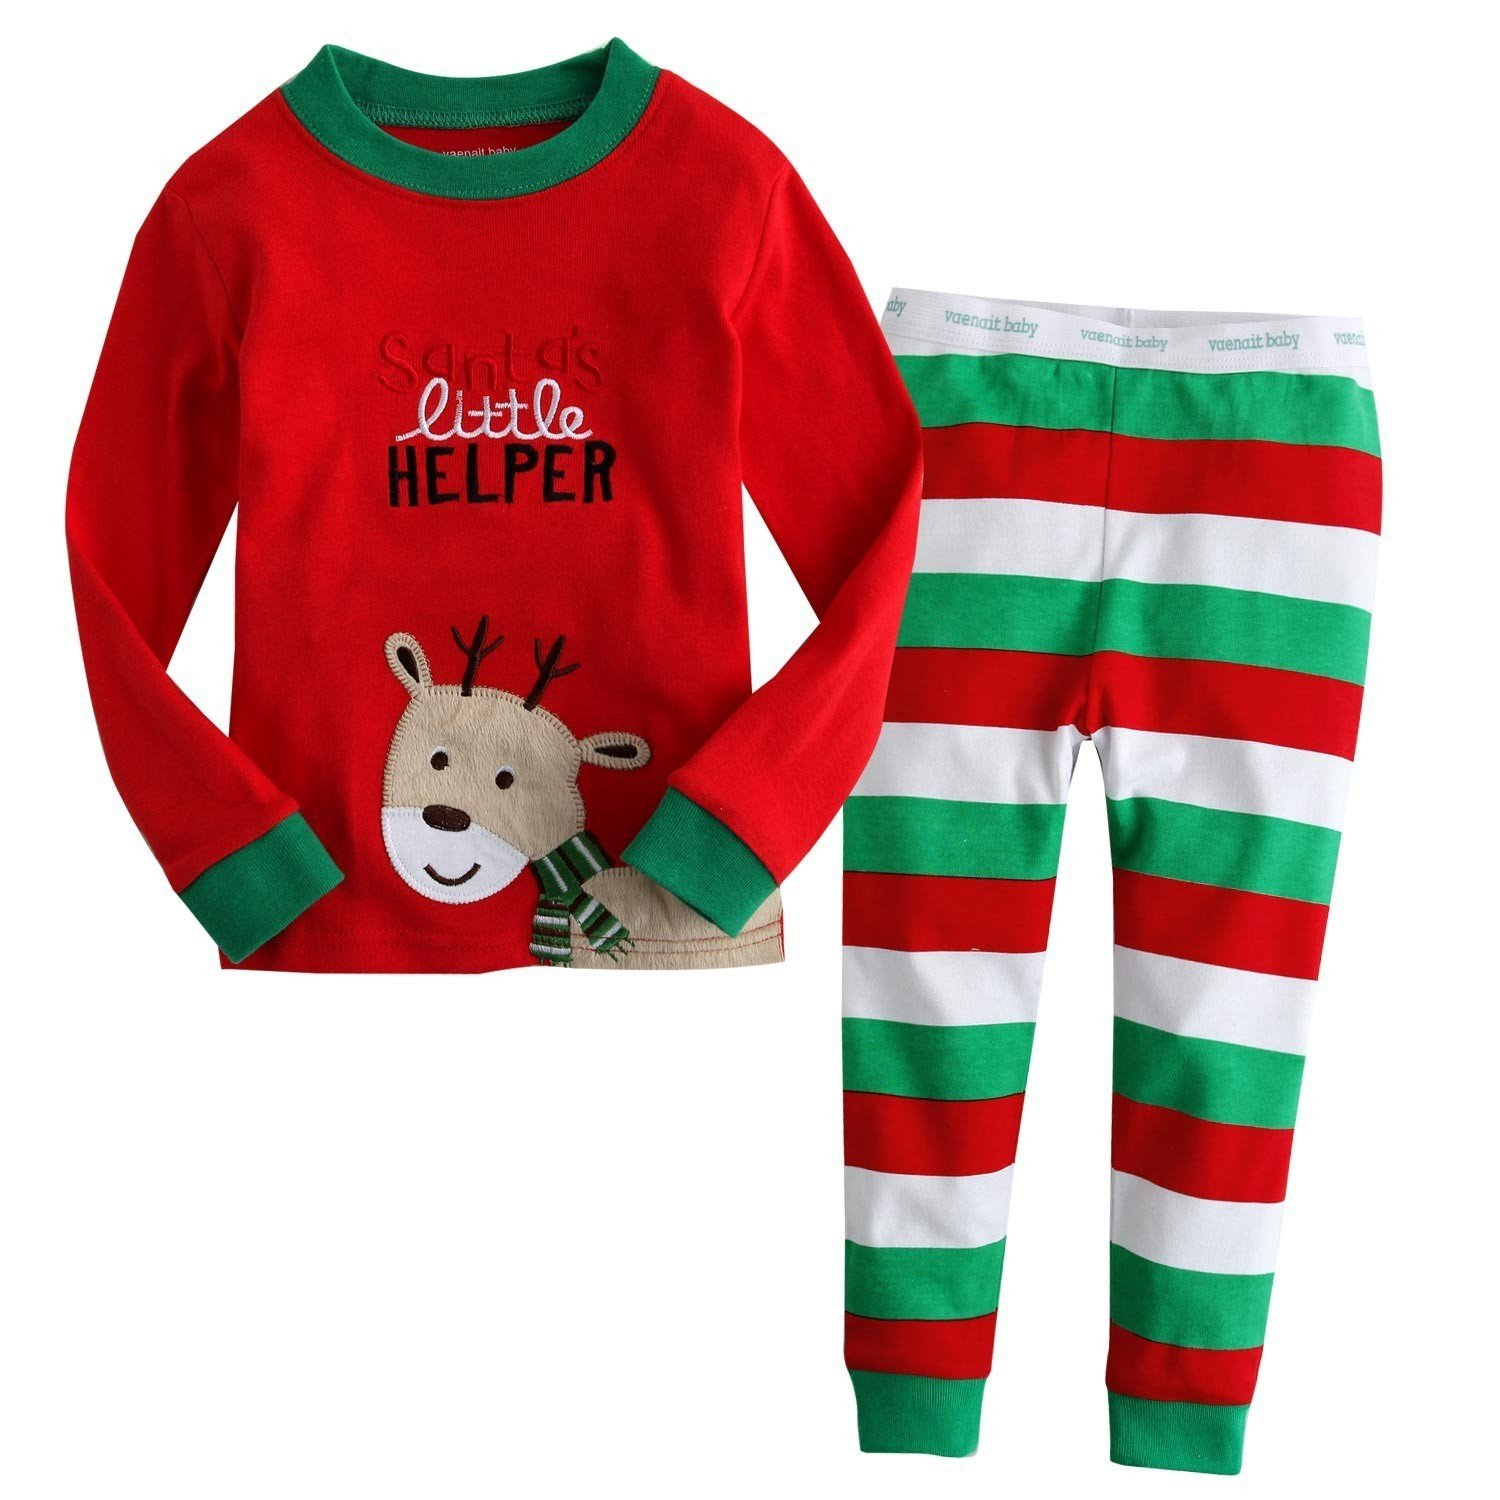 Little Boys Girls' Flying Reindeer Christmas Pjs Sleepwear Cotton Pajamas Sets Bling Stars PS-01-9310-01